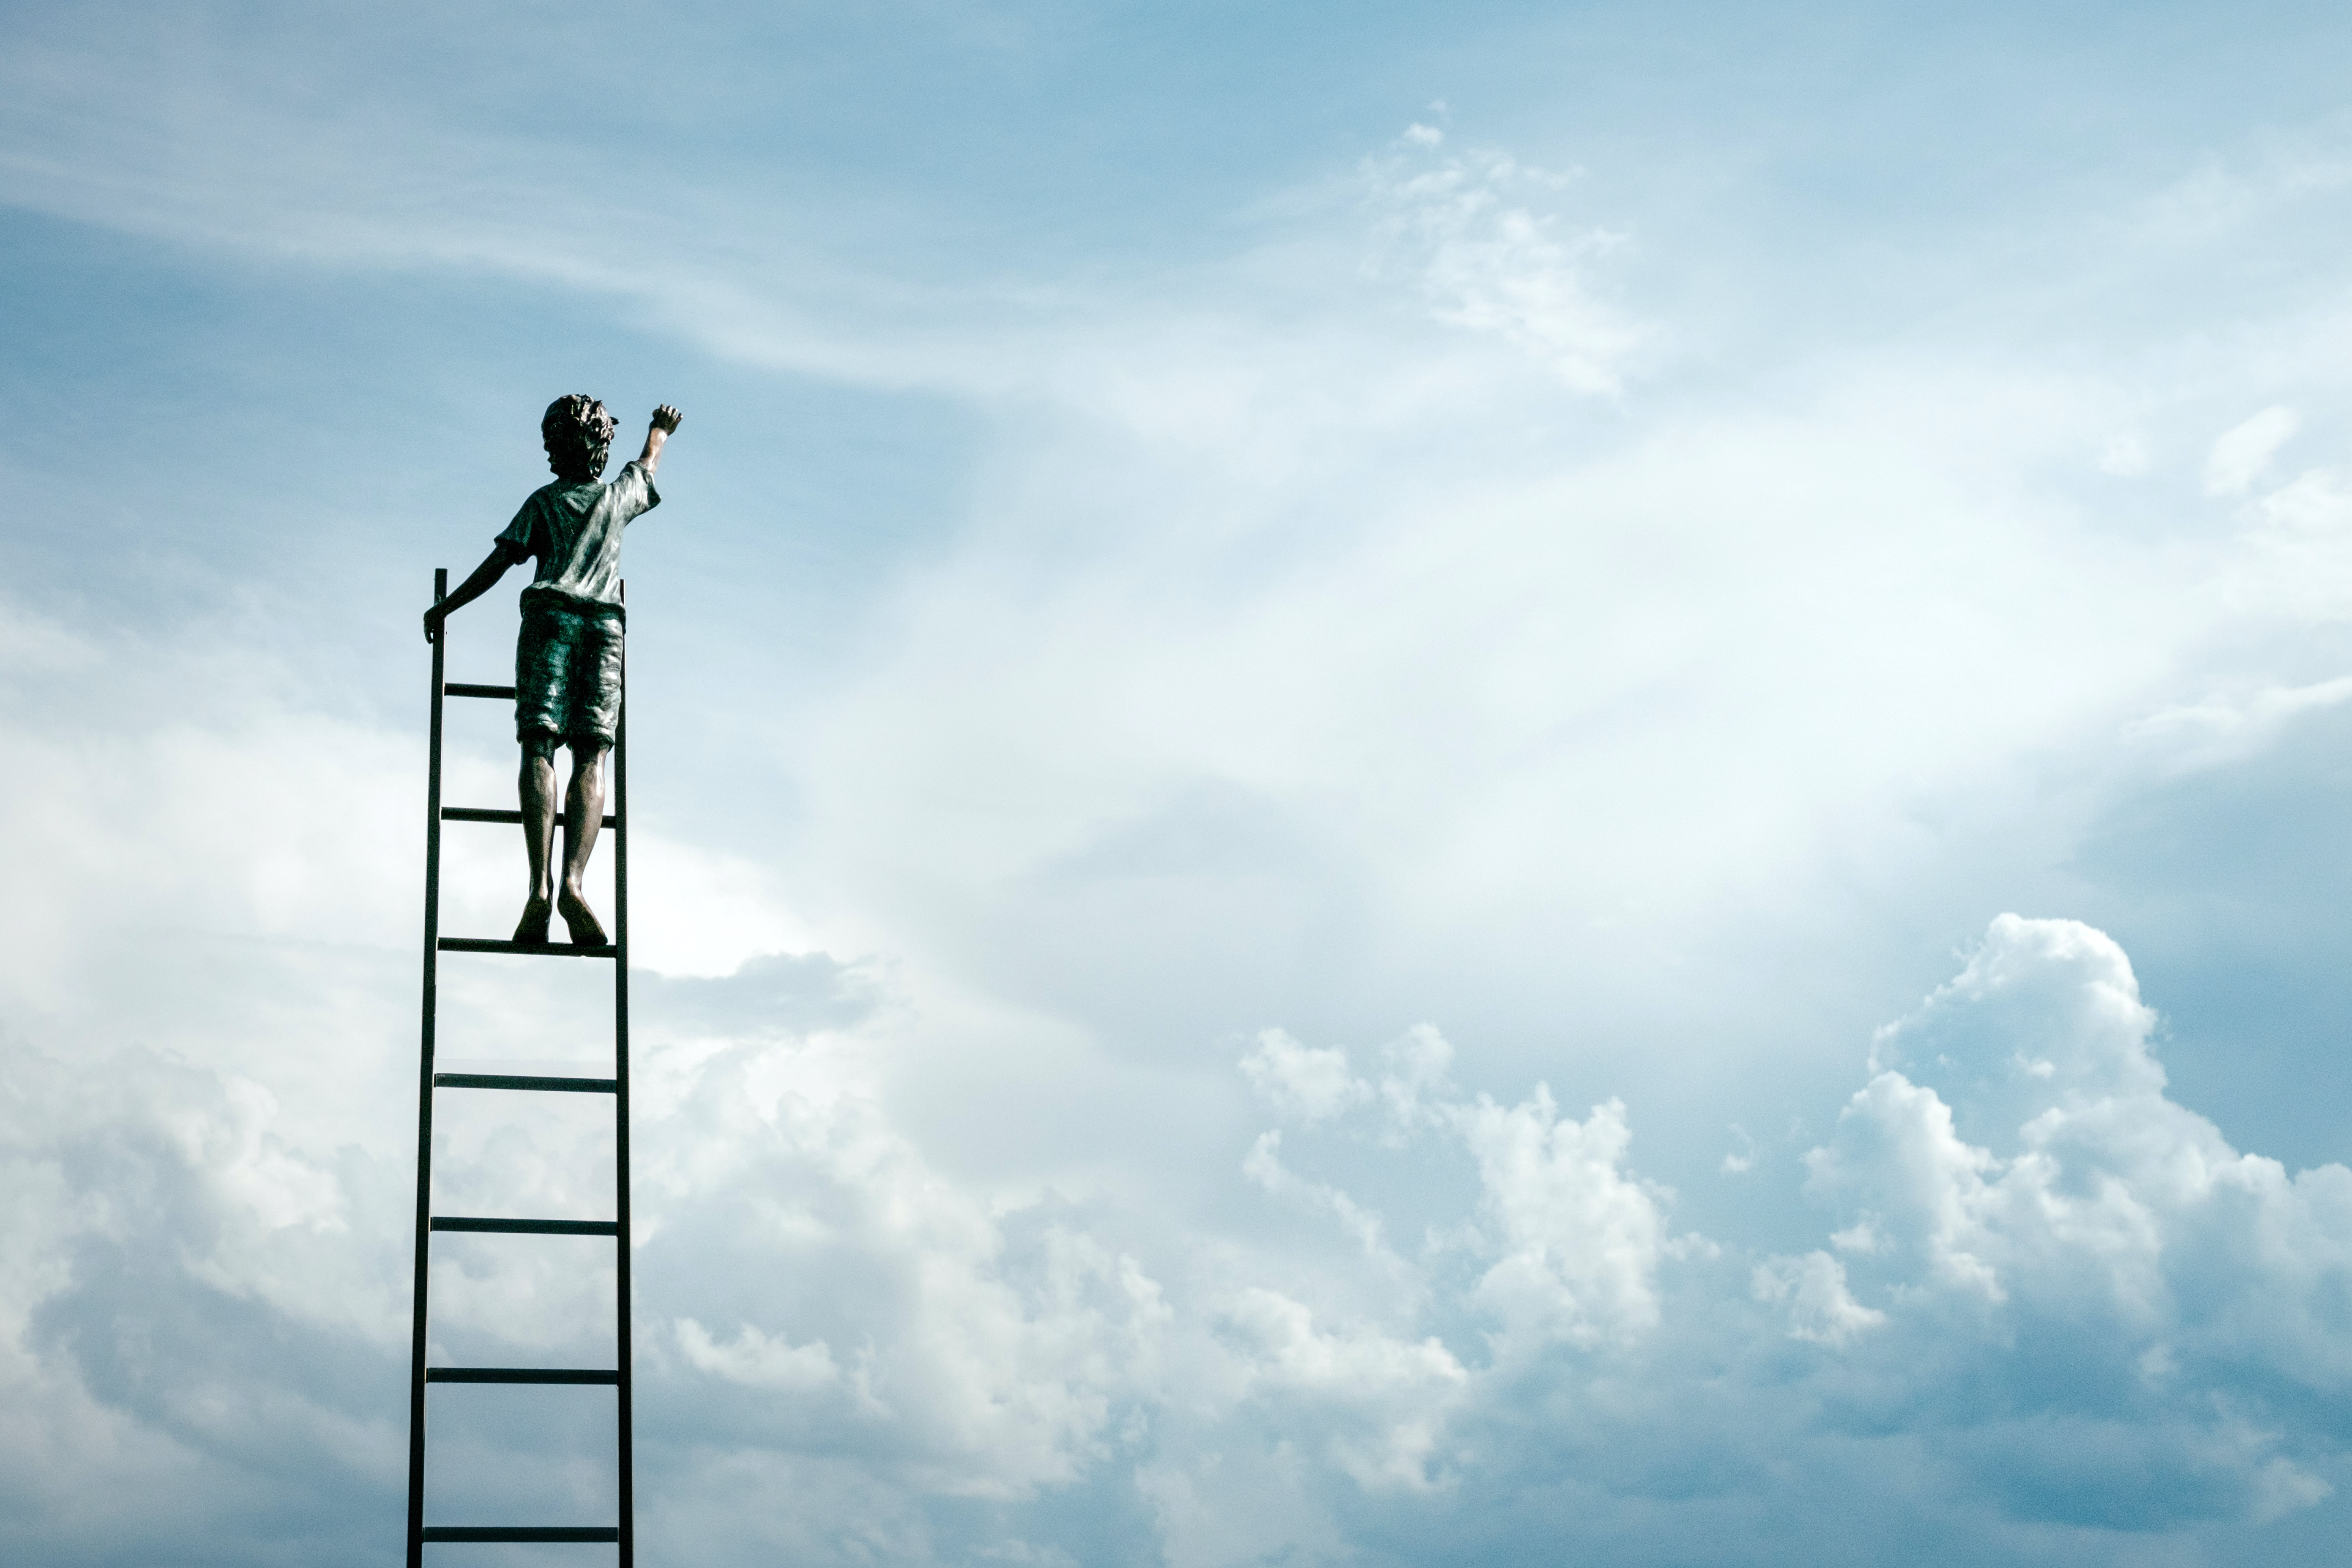 A person standing on top of a ladder in the clouds.